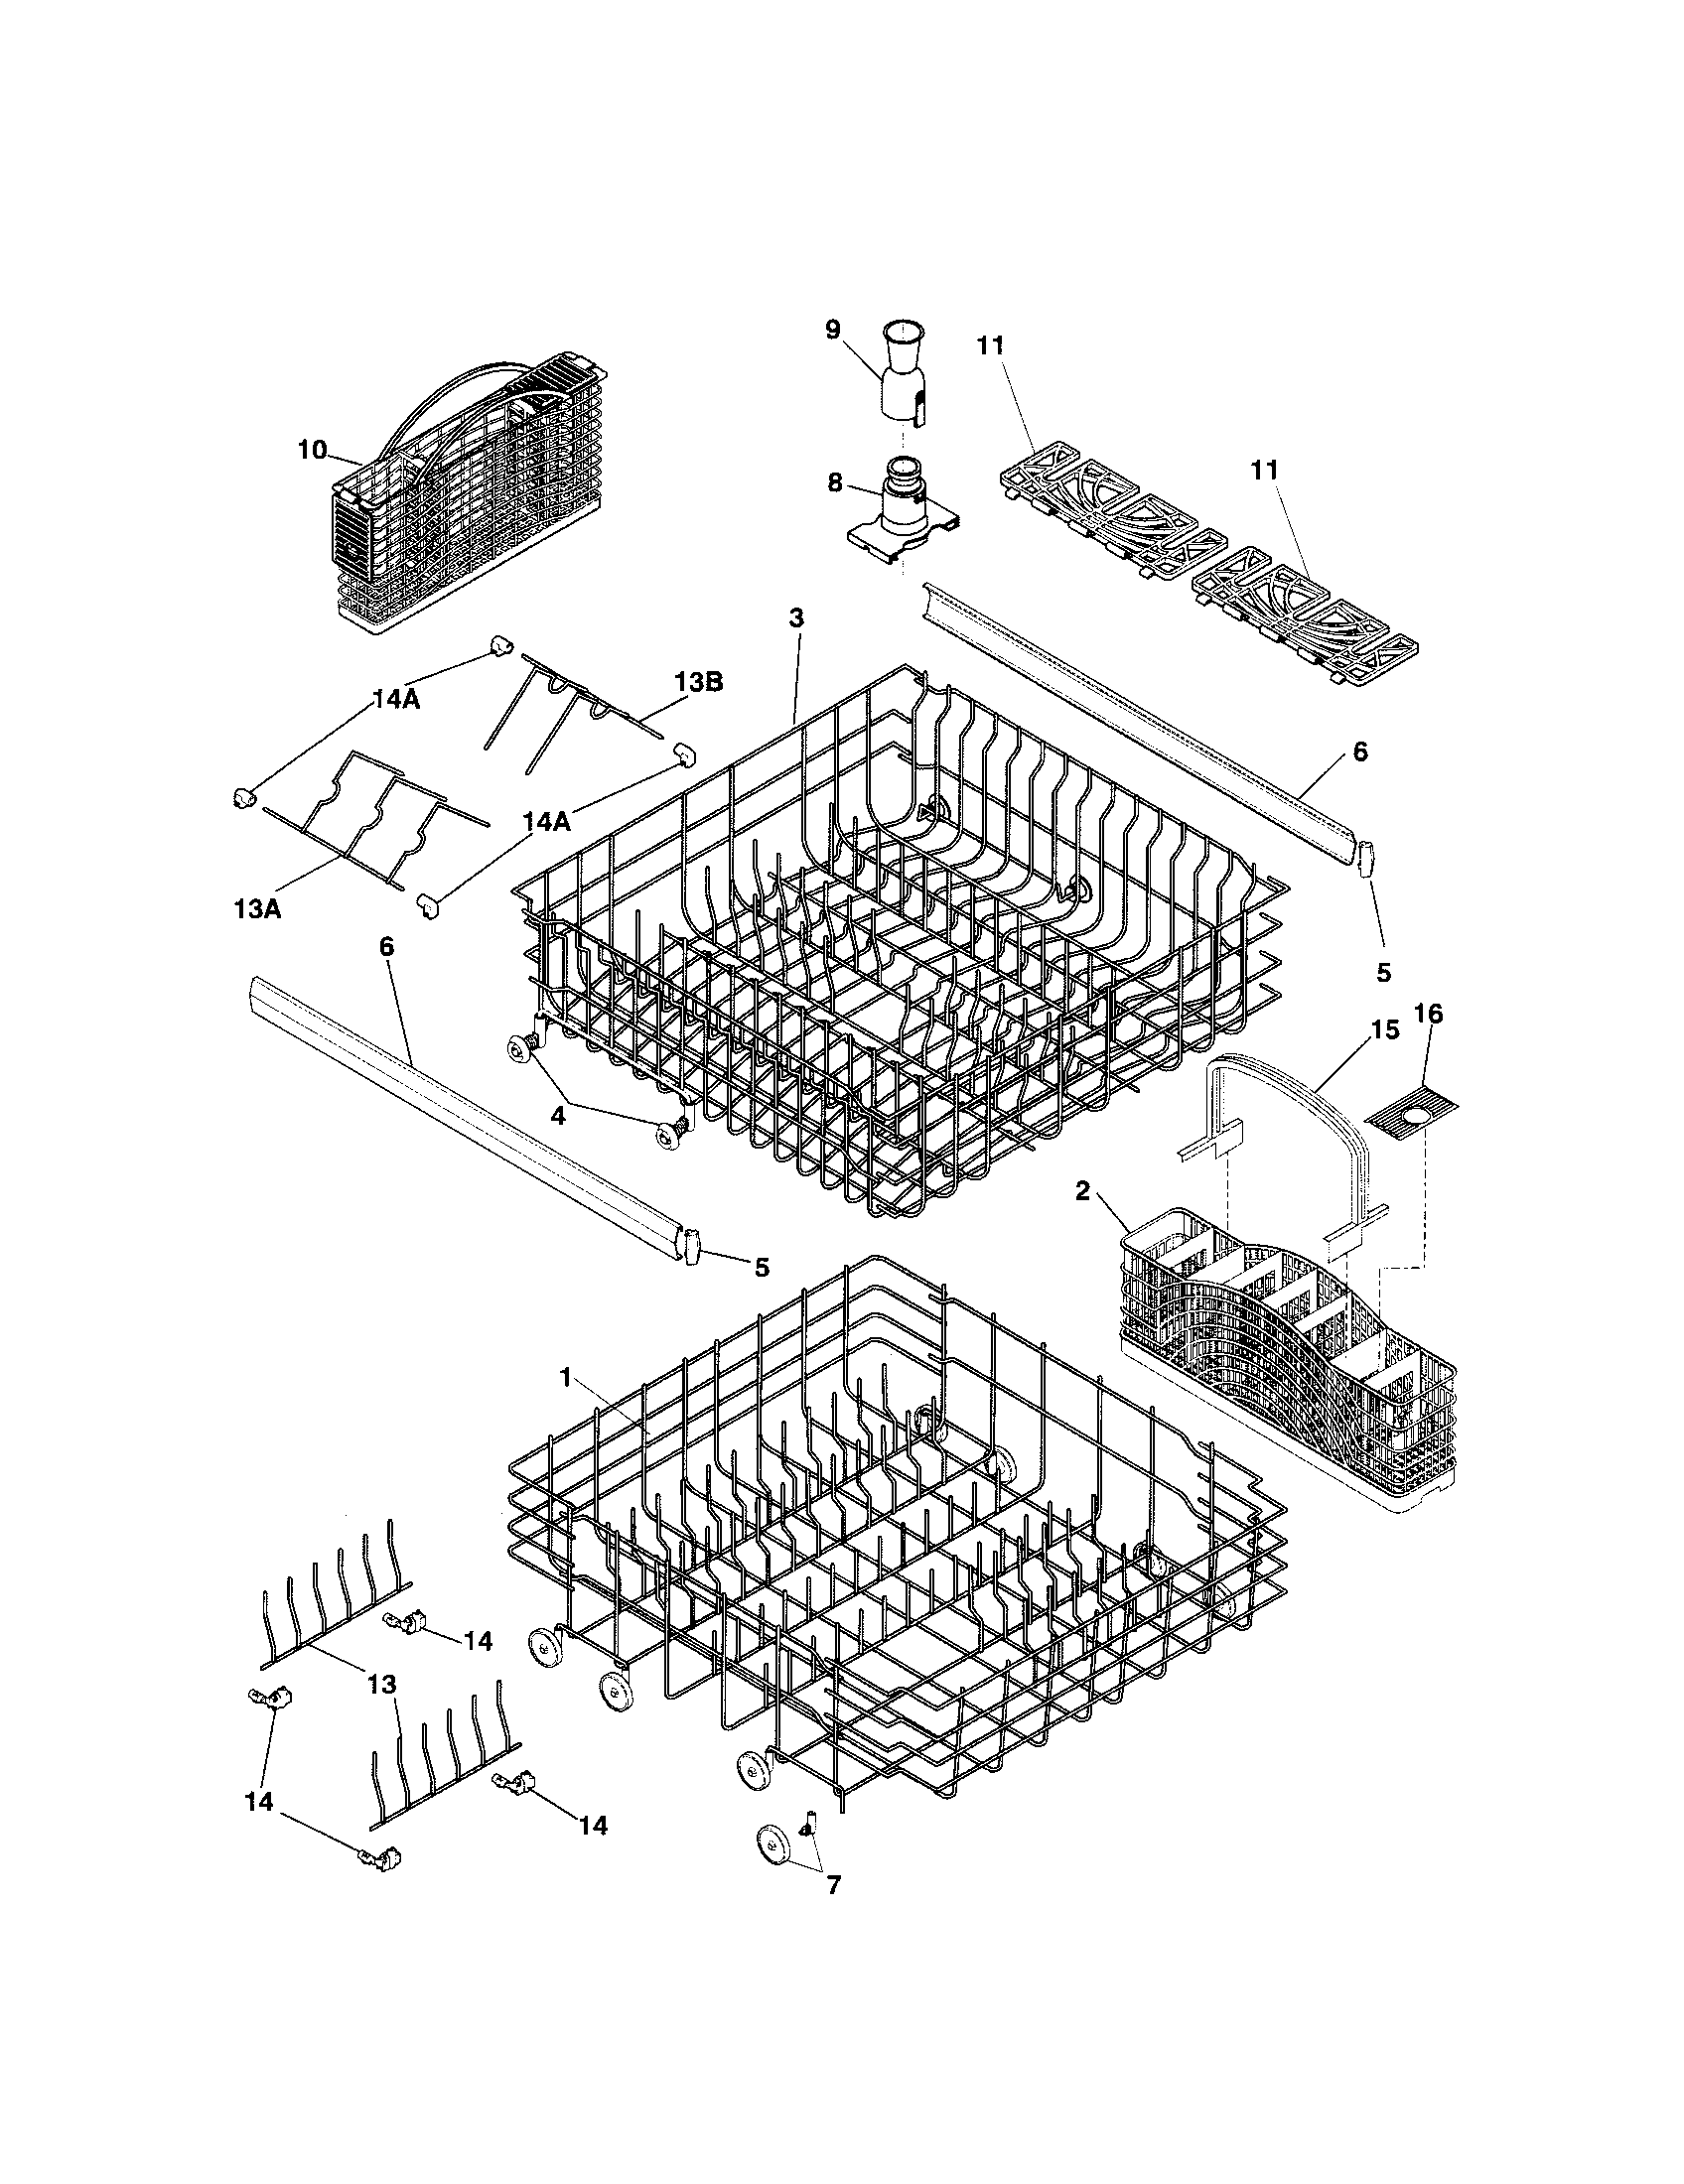 34 Frigidaire Dishwasher Parts Diagram